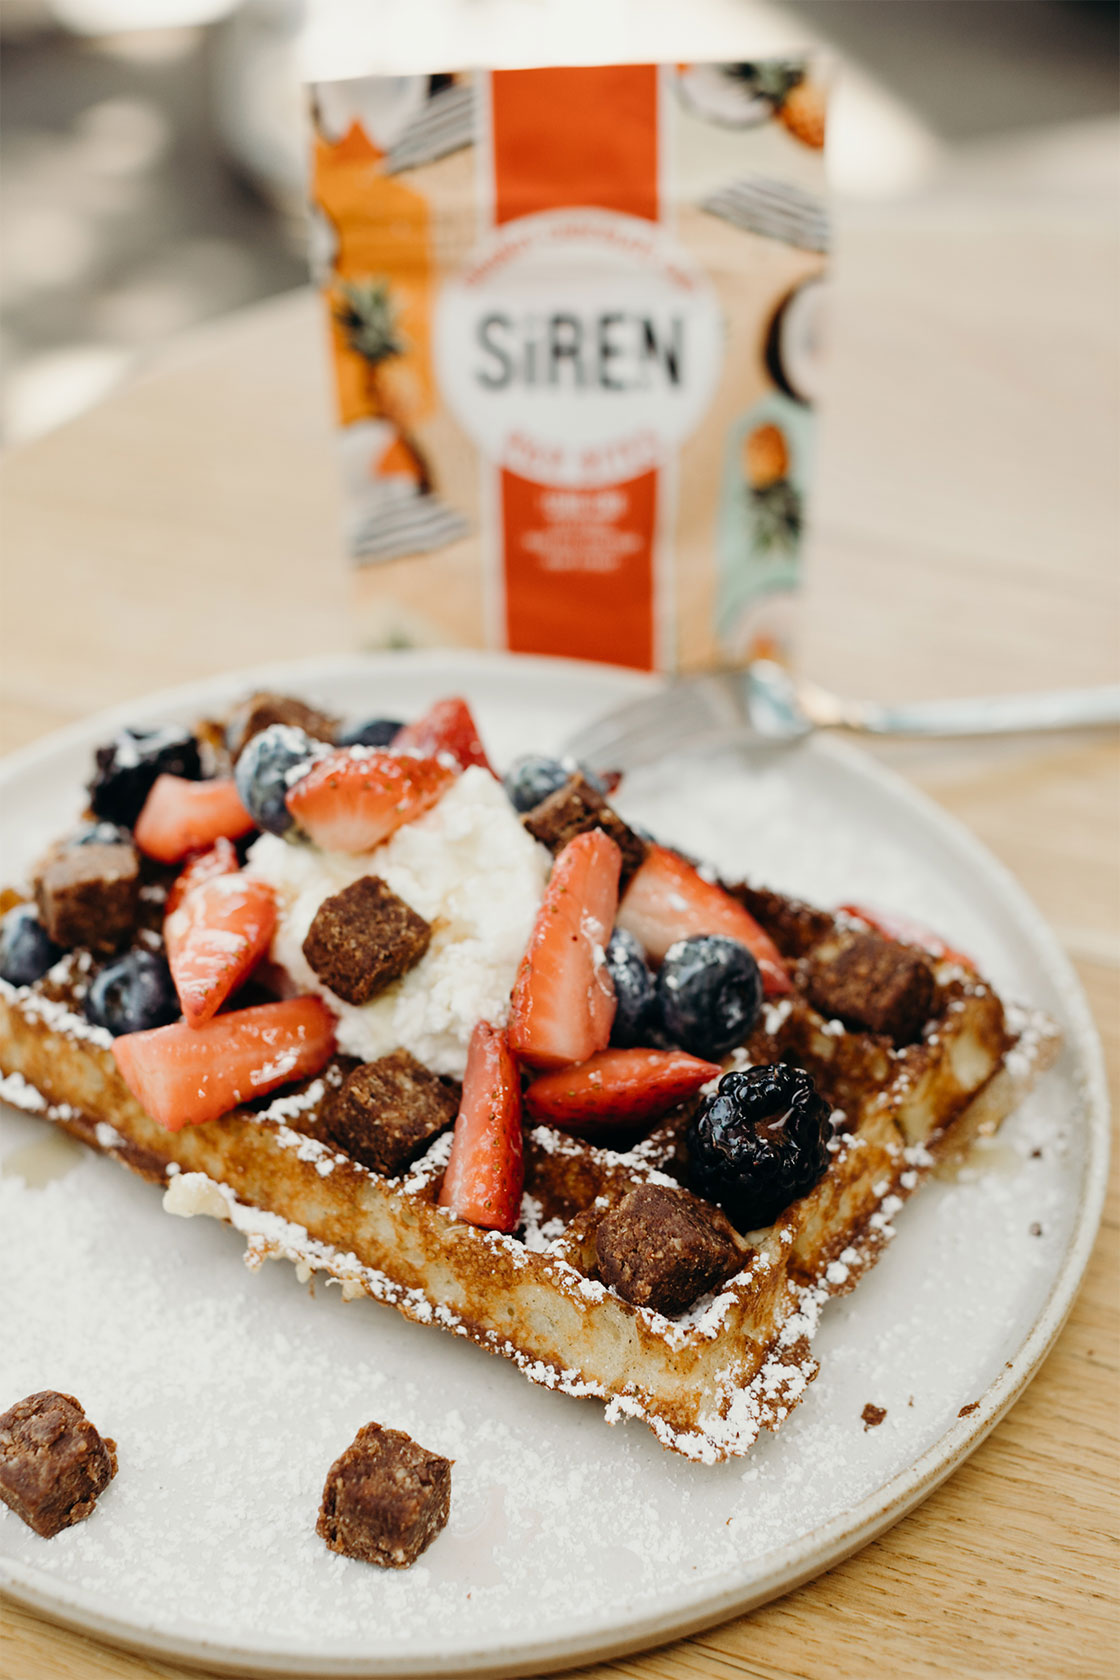 siren snacks plant based gluten free high protein snack content creation by Meraki Narrative: A Branding, Design, and Creative Agency